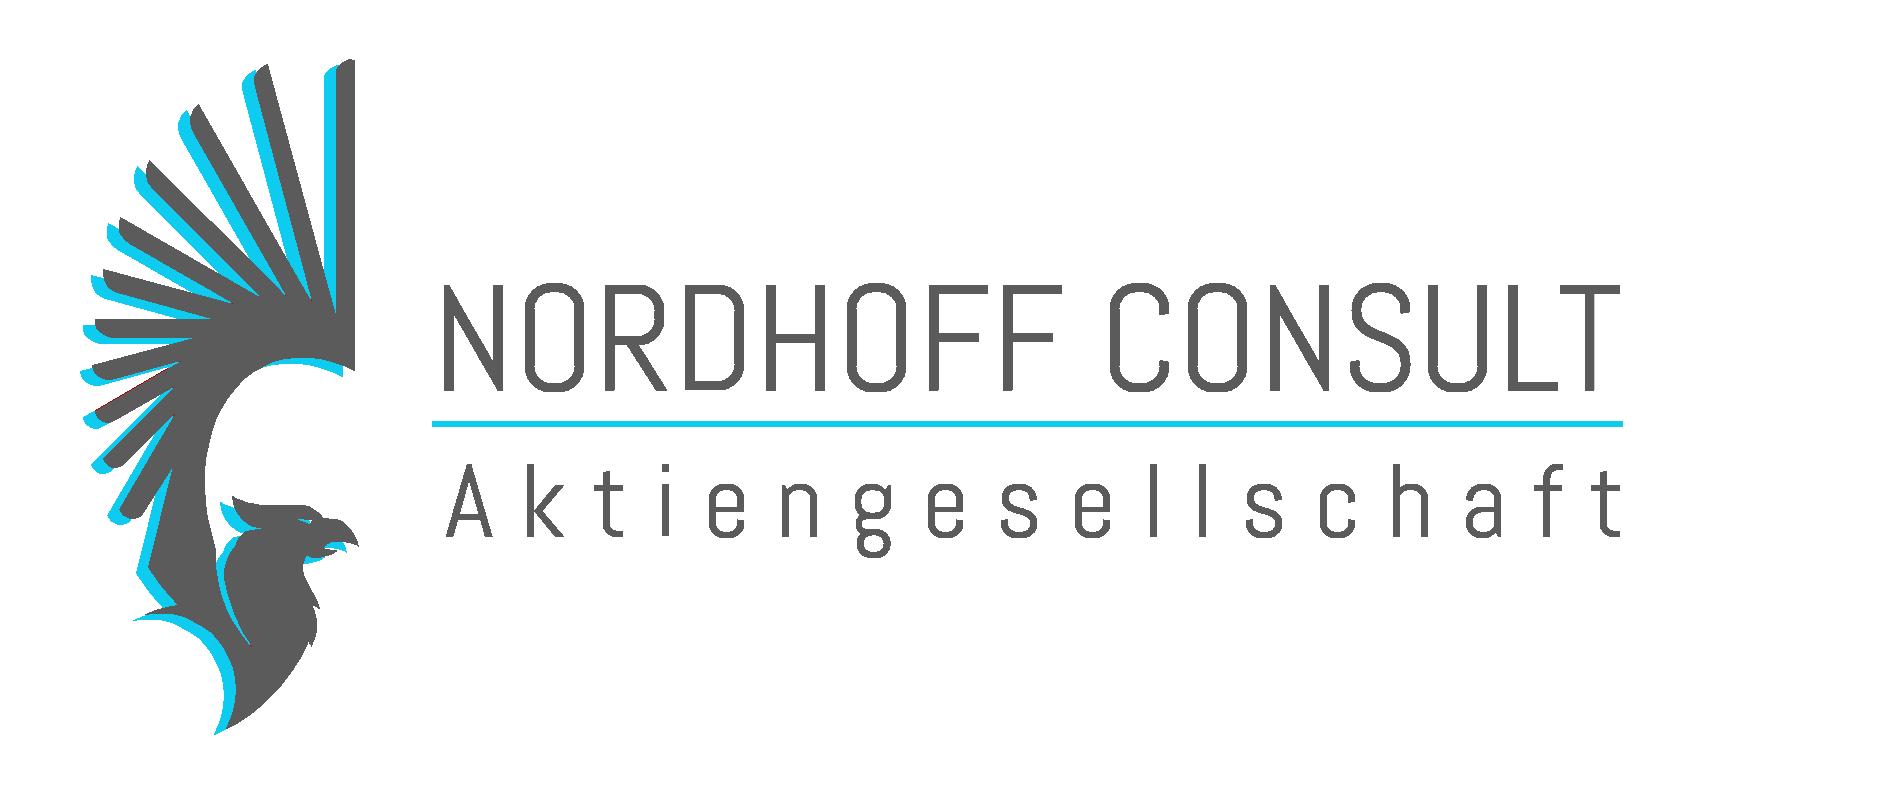 Nordhoffconsult AG Header Light Blute grey